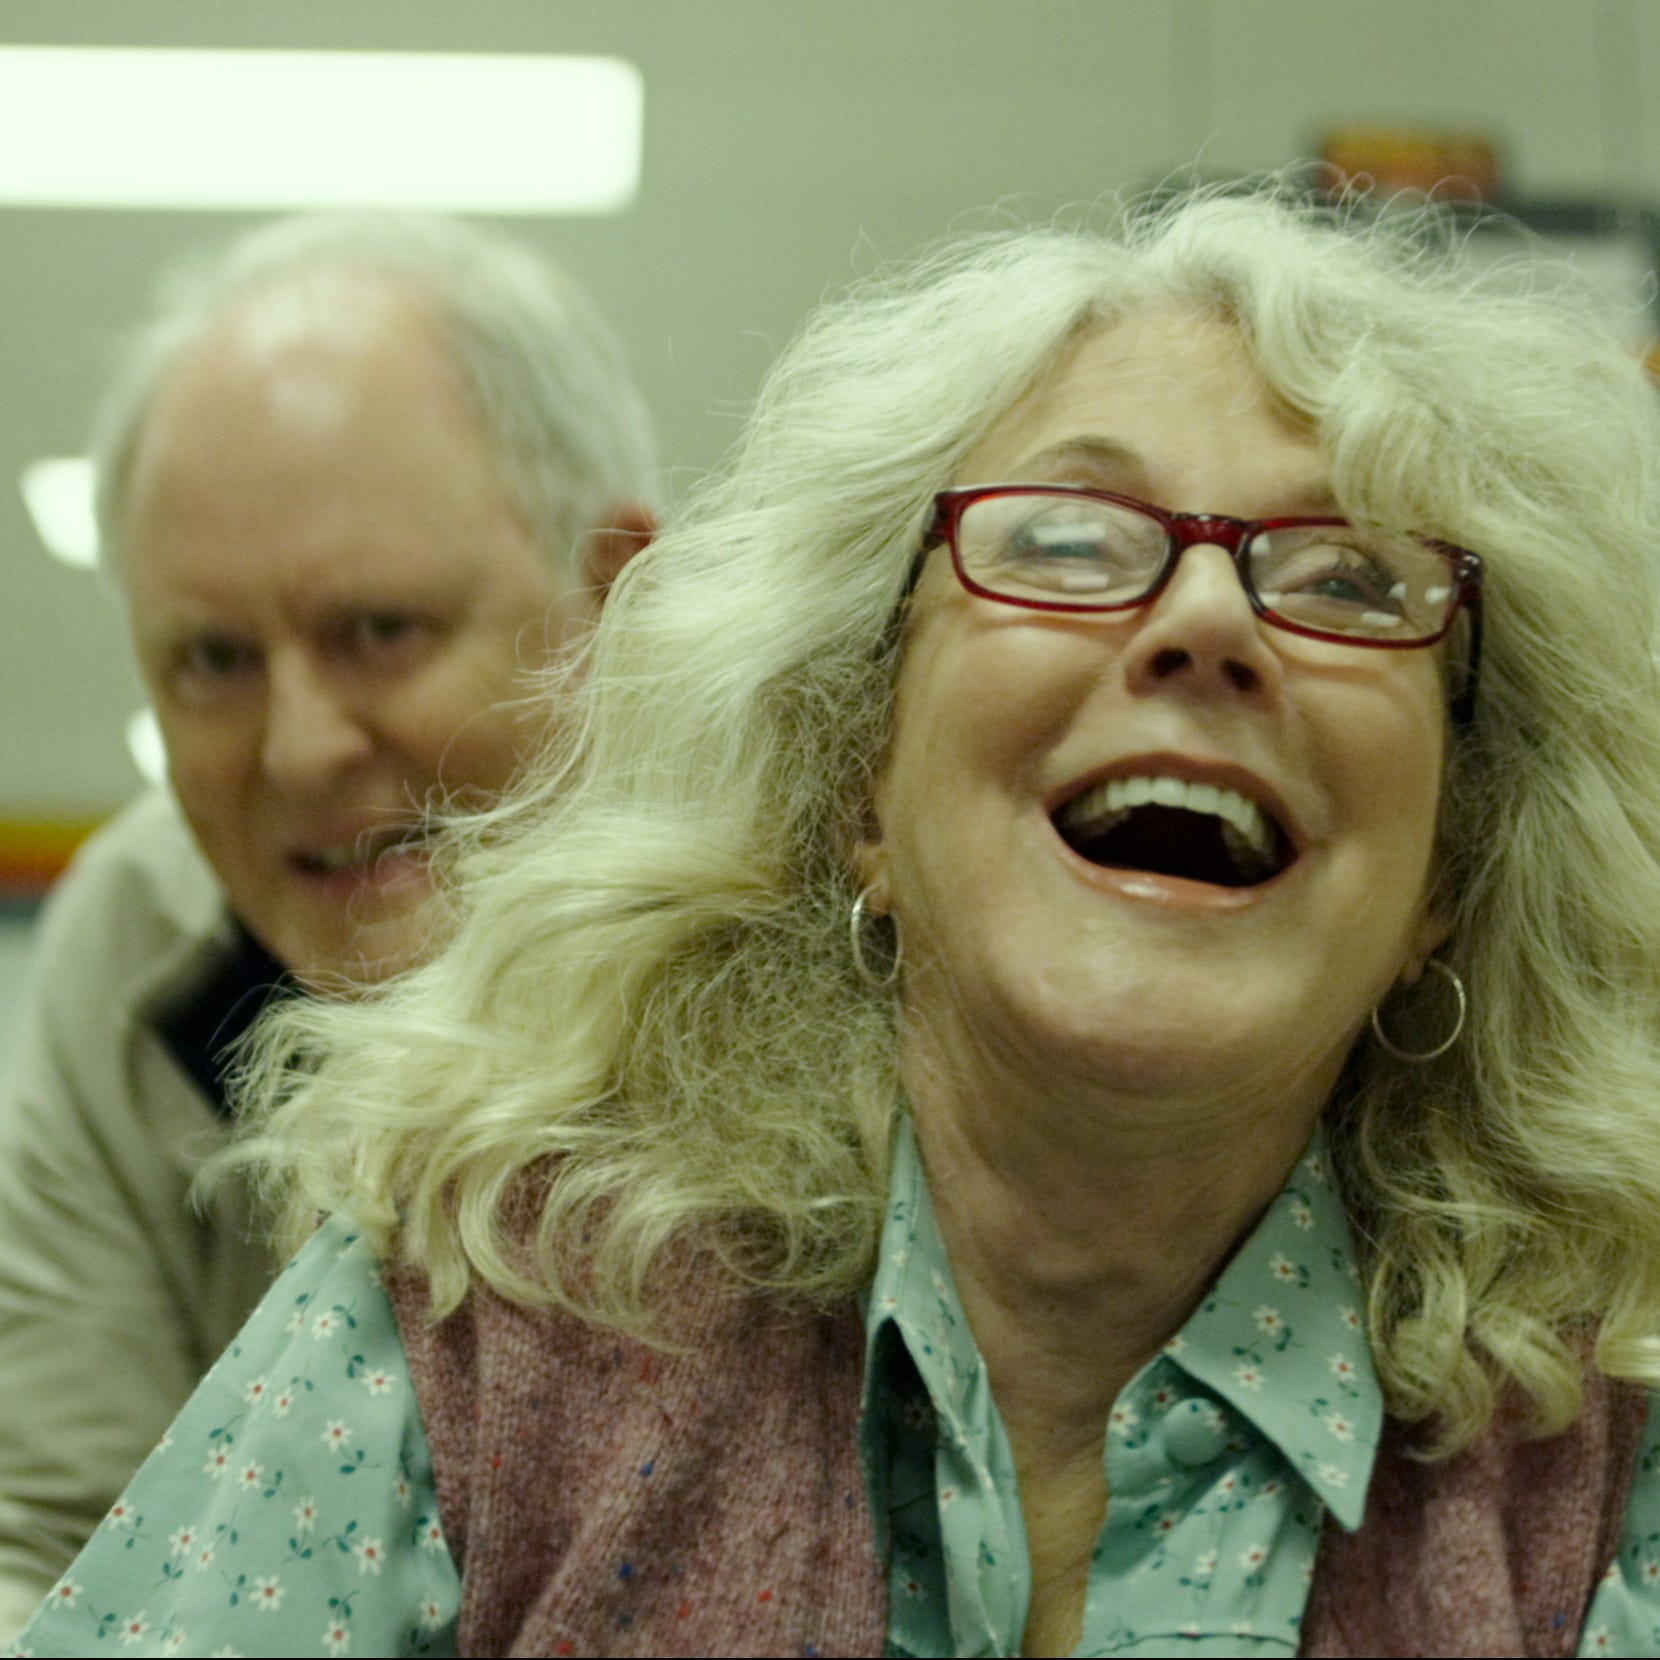 """John Lithgow and Blythe Danner star as two eccentric small-town hoarders who fall in love in the romantic drama """"The Tomorrow Man."""" (May 22)"""